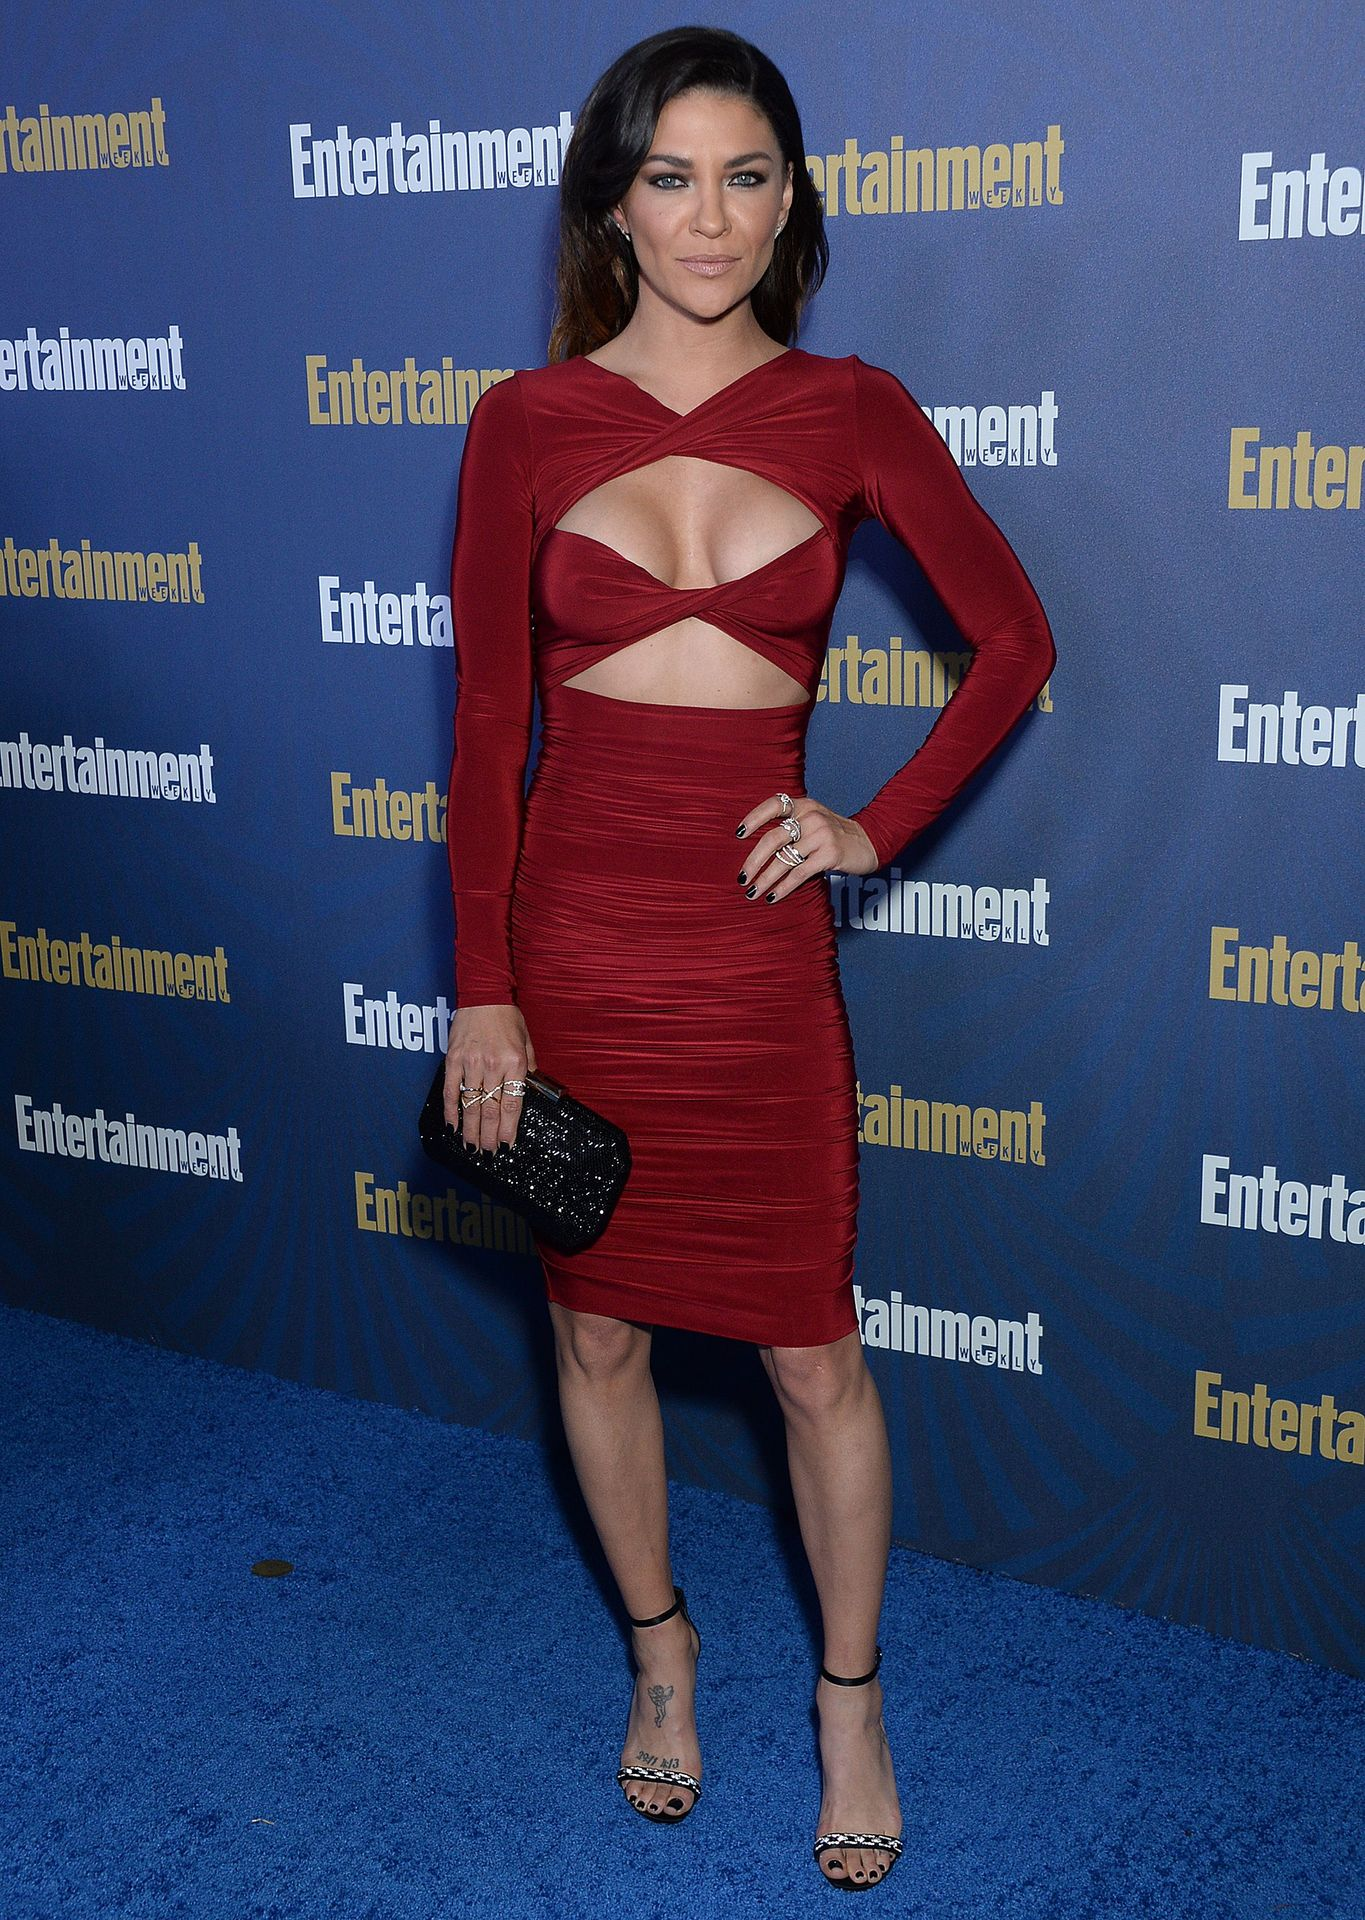 Jessica Szohr Shows Her Cleavage At The Entertainment Weekly Pre Sag Awards Celebration 0001